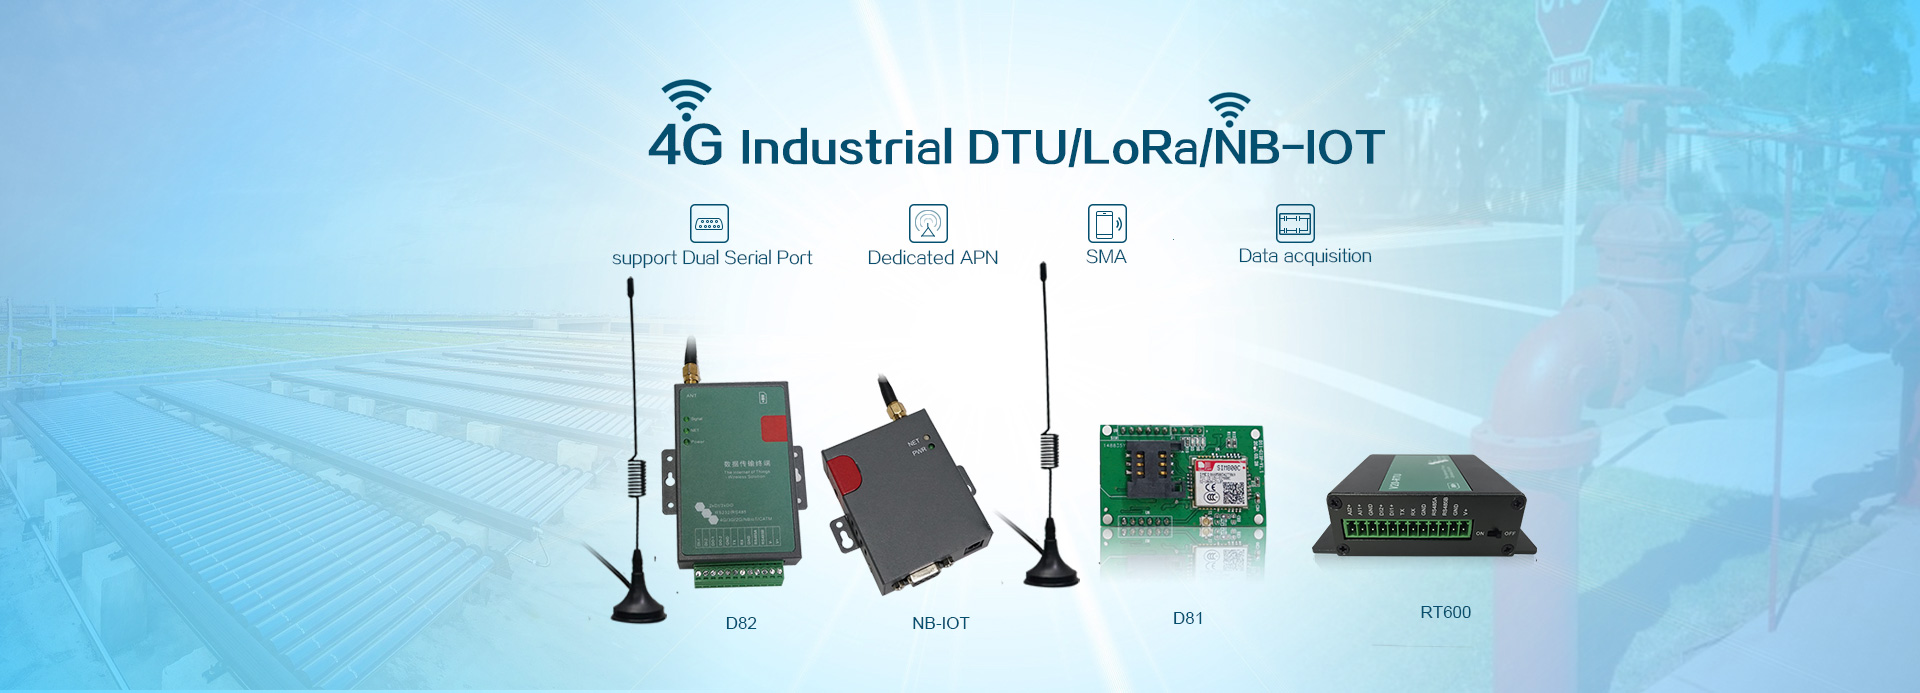 Industrial 3G/4G LTE Router and Modem   Wlink-Tech